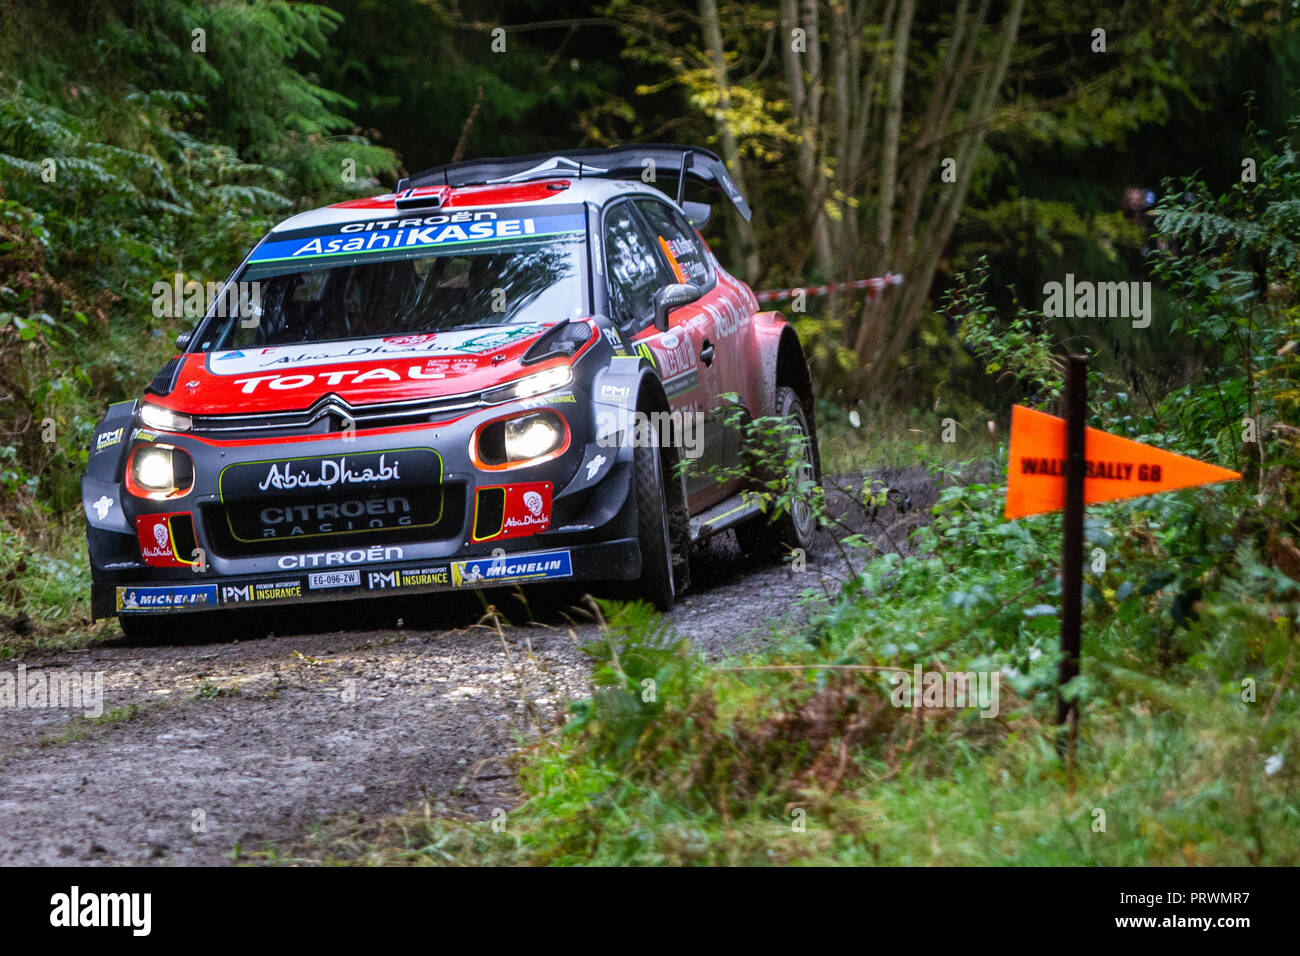 clocaenog uk 4th oct 2018 wrc dayinsure wales rally gb shakedown citroen total abu dhabi. Black Bedroom Furniture Sets. Home Design Ideas